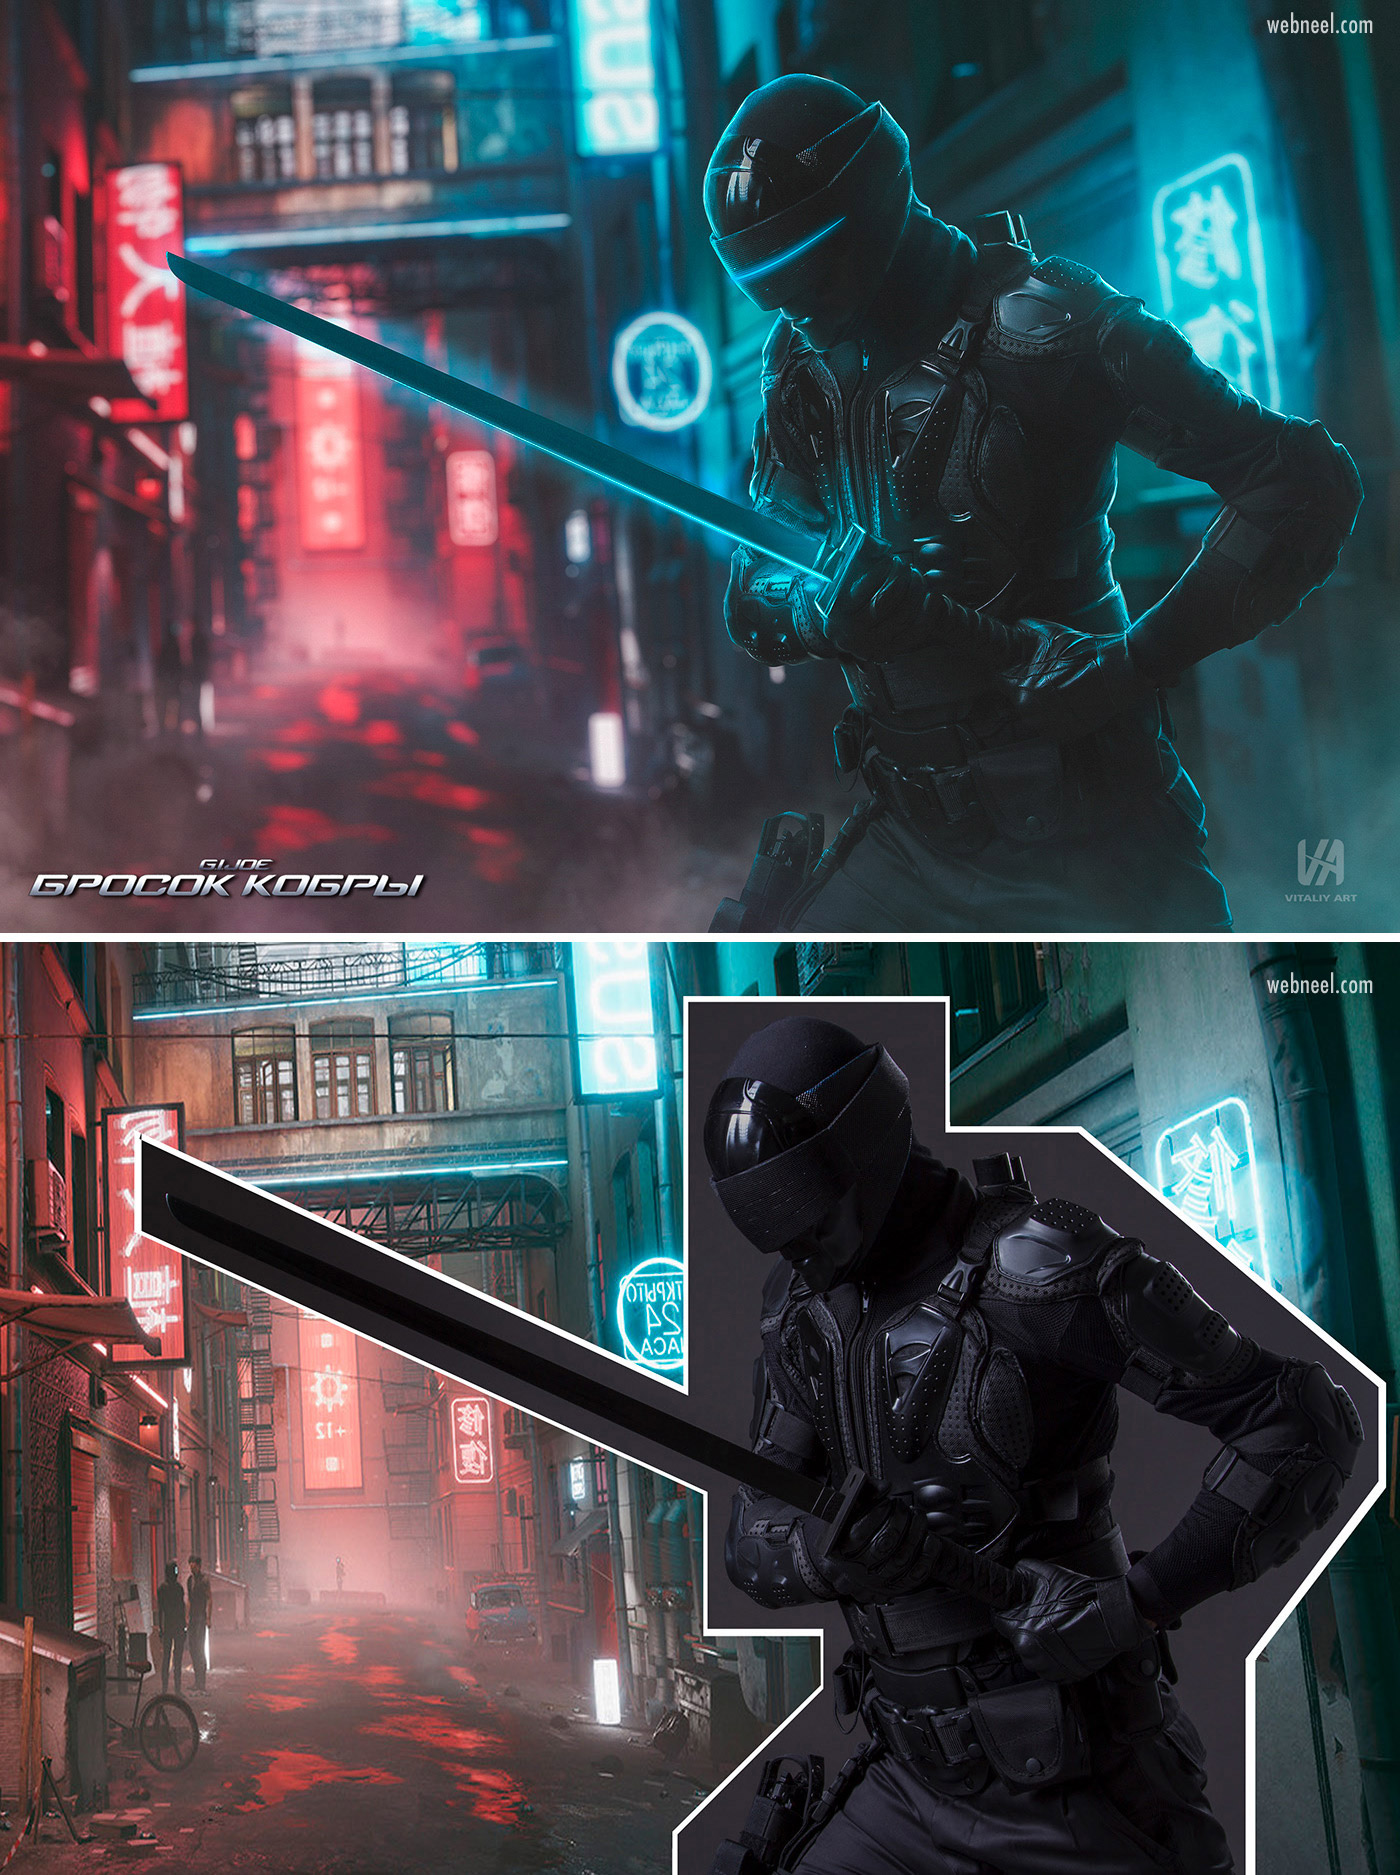 photo retouching after before futuristic neon sci fi fighter alien